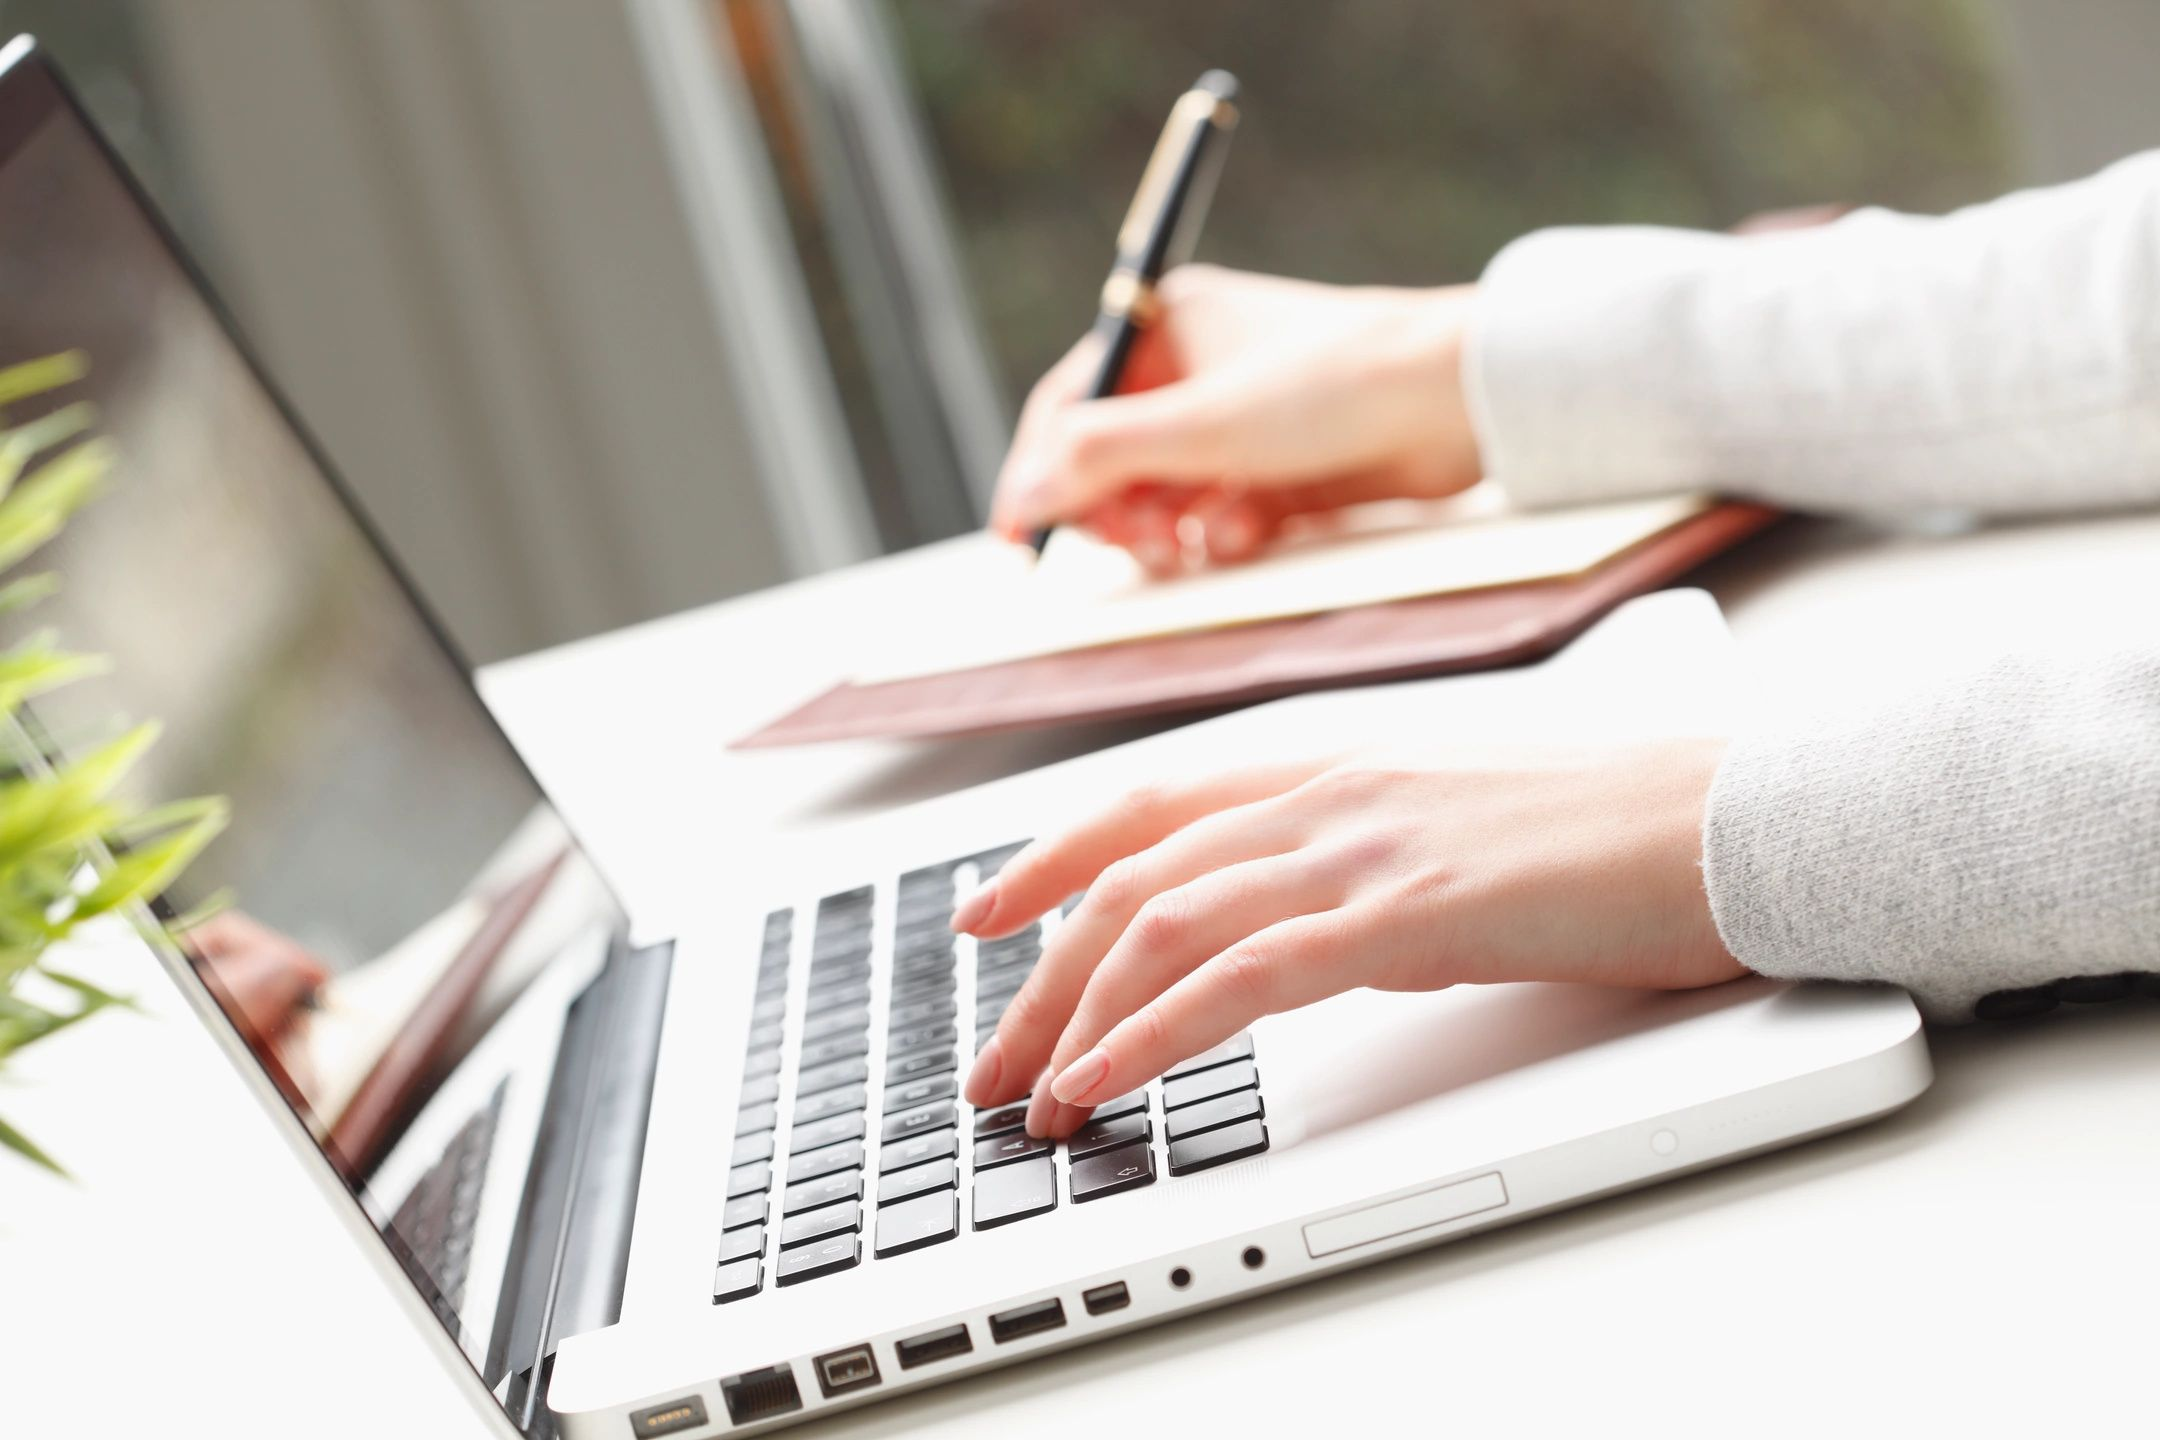 Hands typing and writing